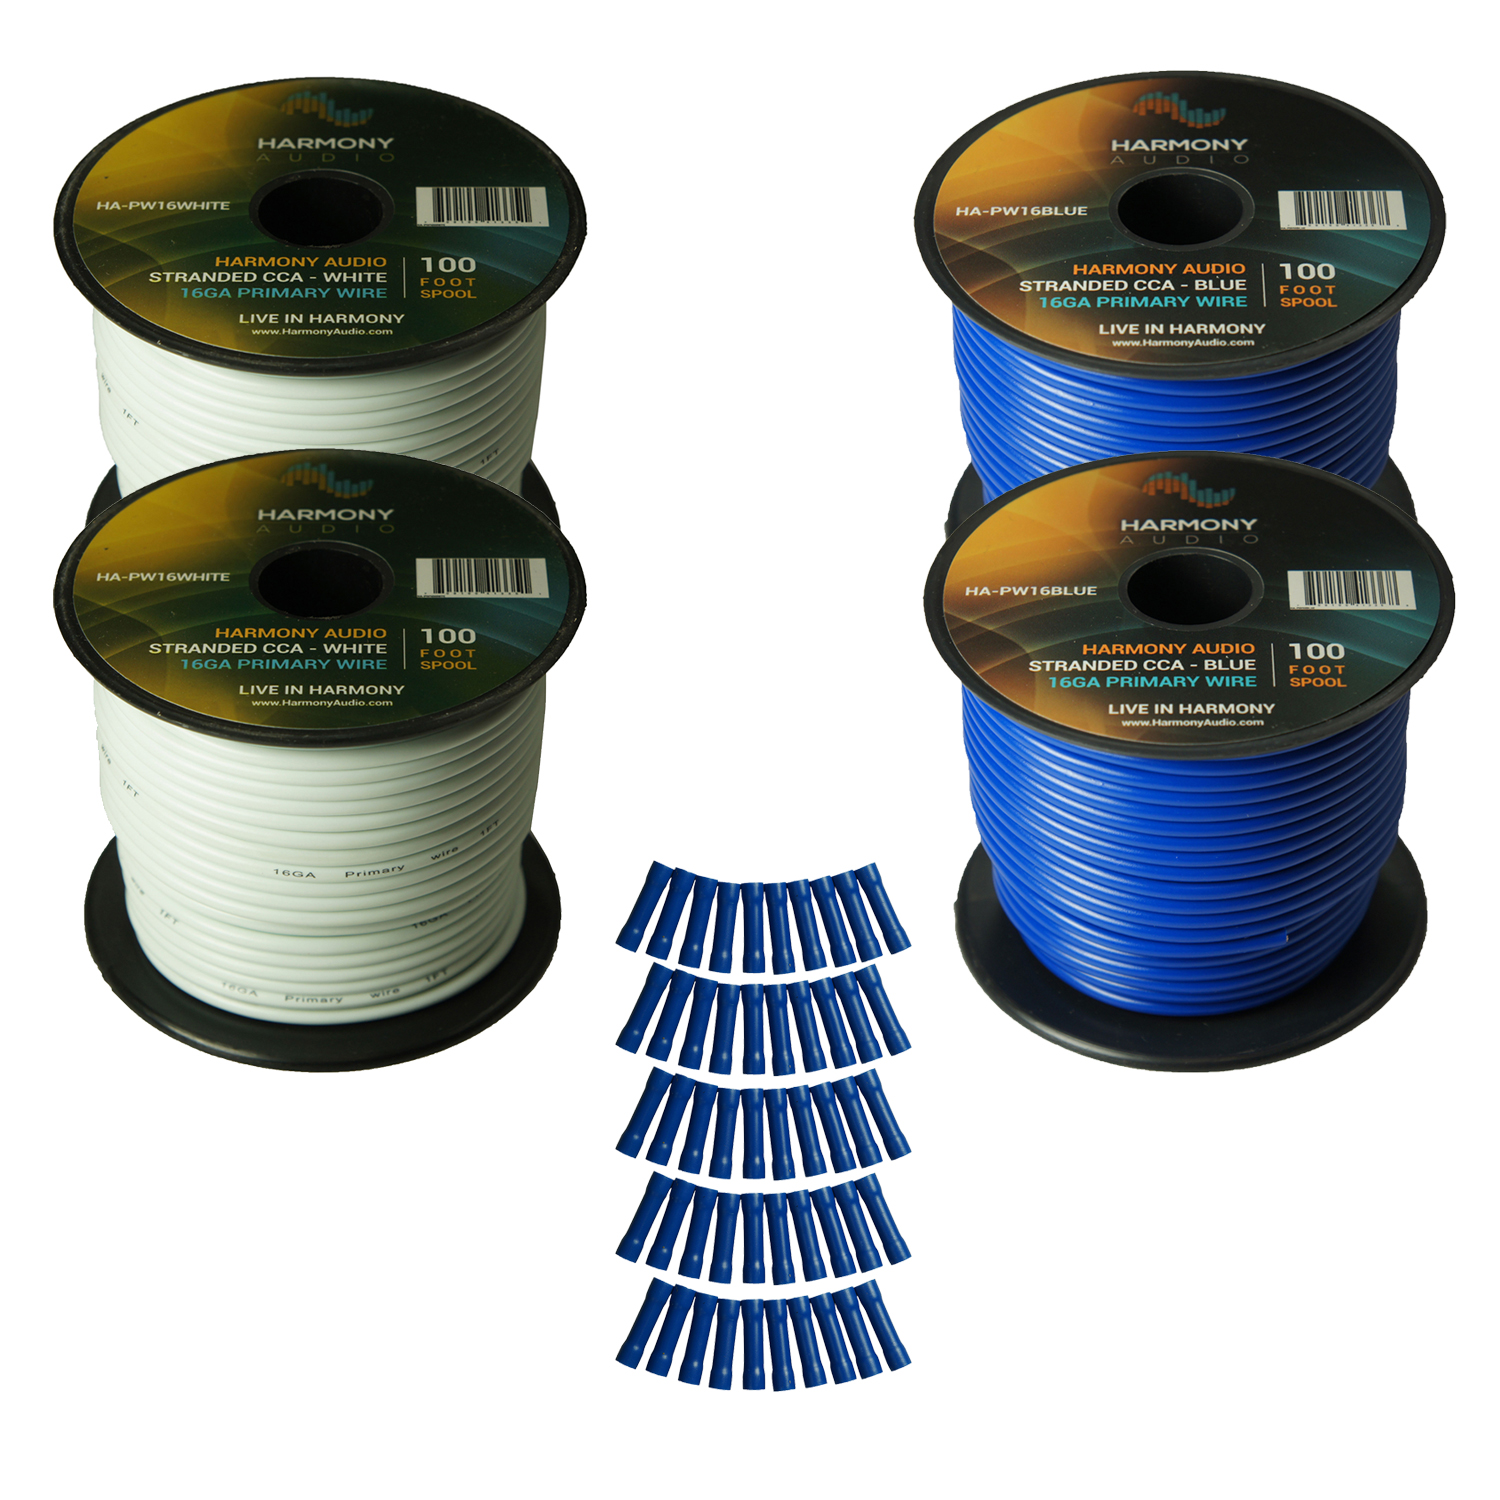 Harmony Audio Primary Single Conductor 16 Gauge Power or Ground Wire - 4 Rolls - 400 Feet - White & Blue for Car Audio / Trailer / Model Train / Remote